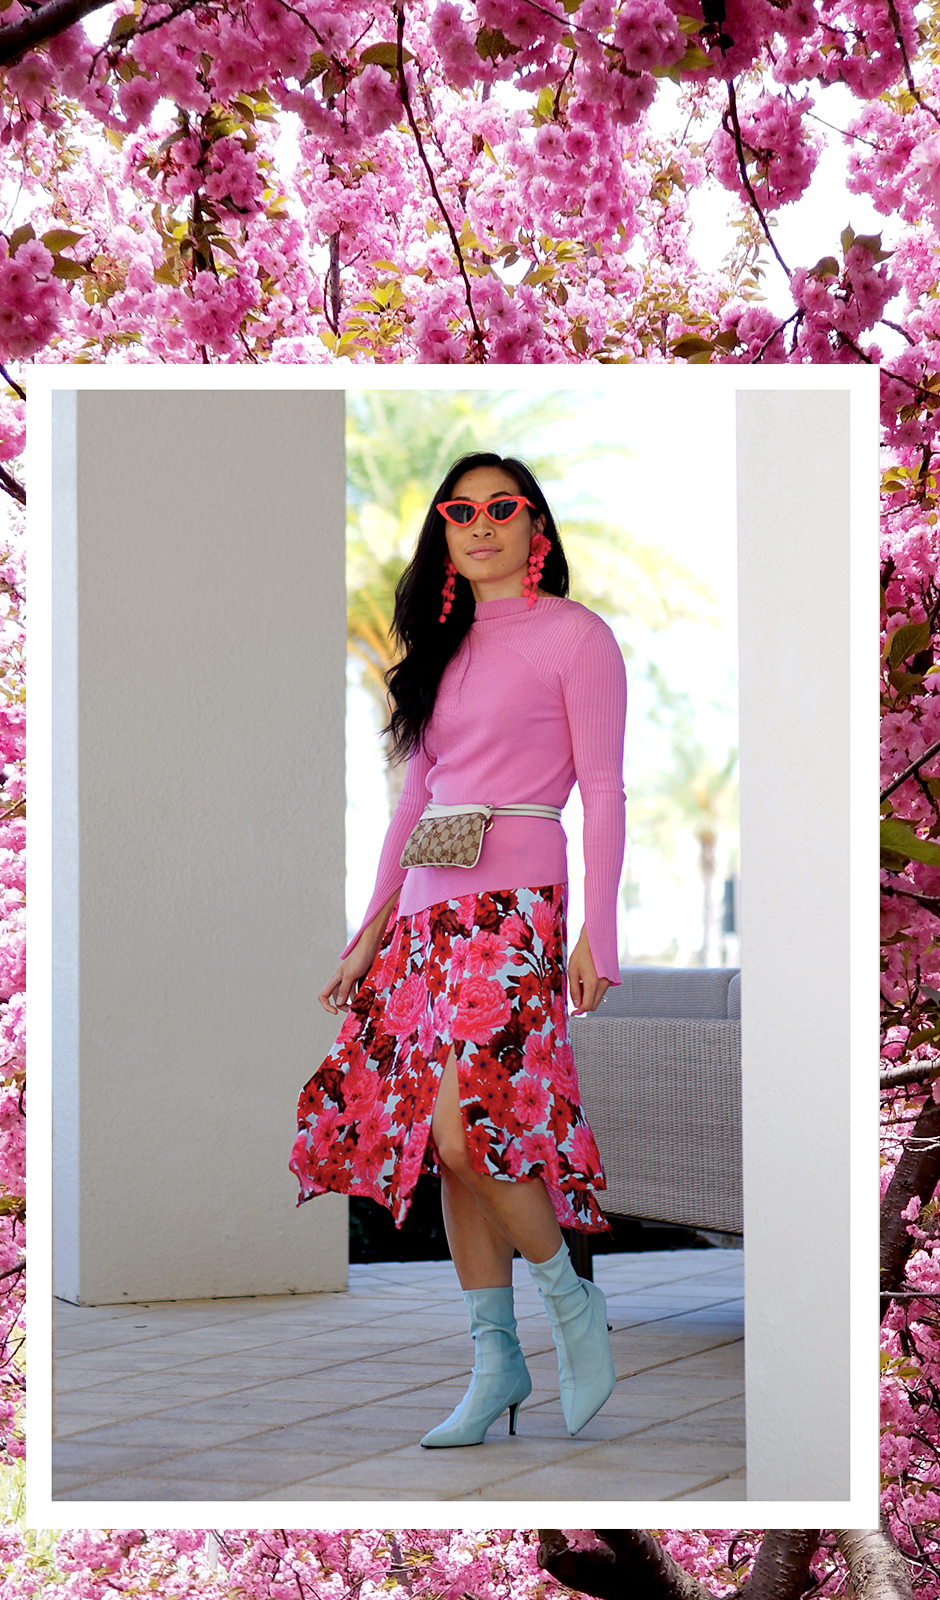 Street Style Spring Summer Outfit Inspiration - Sock Boots, Scarft Asymmetrical Floral Skirt and Micro Sunnies - Inspiring Quotes on Beauty to Live By - #fashionblog #outfitideas #outfitinspiration #outfitinspo #streetstyle #streetfashion #stylishoutfit #stylishspringoutfit #officeoutfit #officestyle #stylish